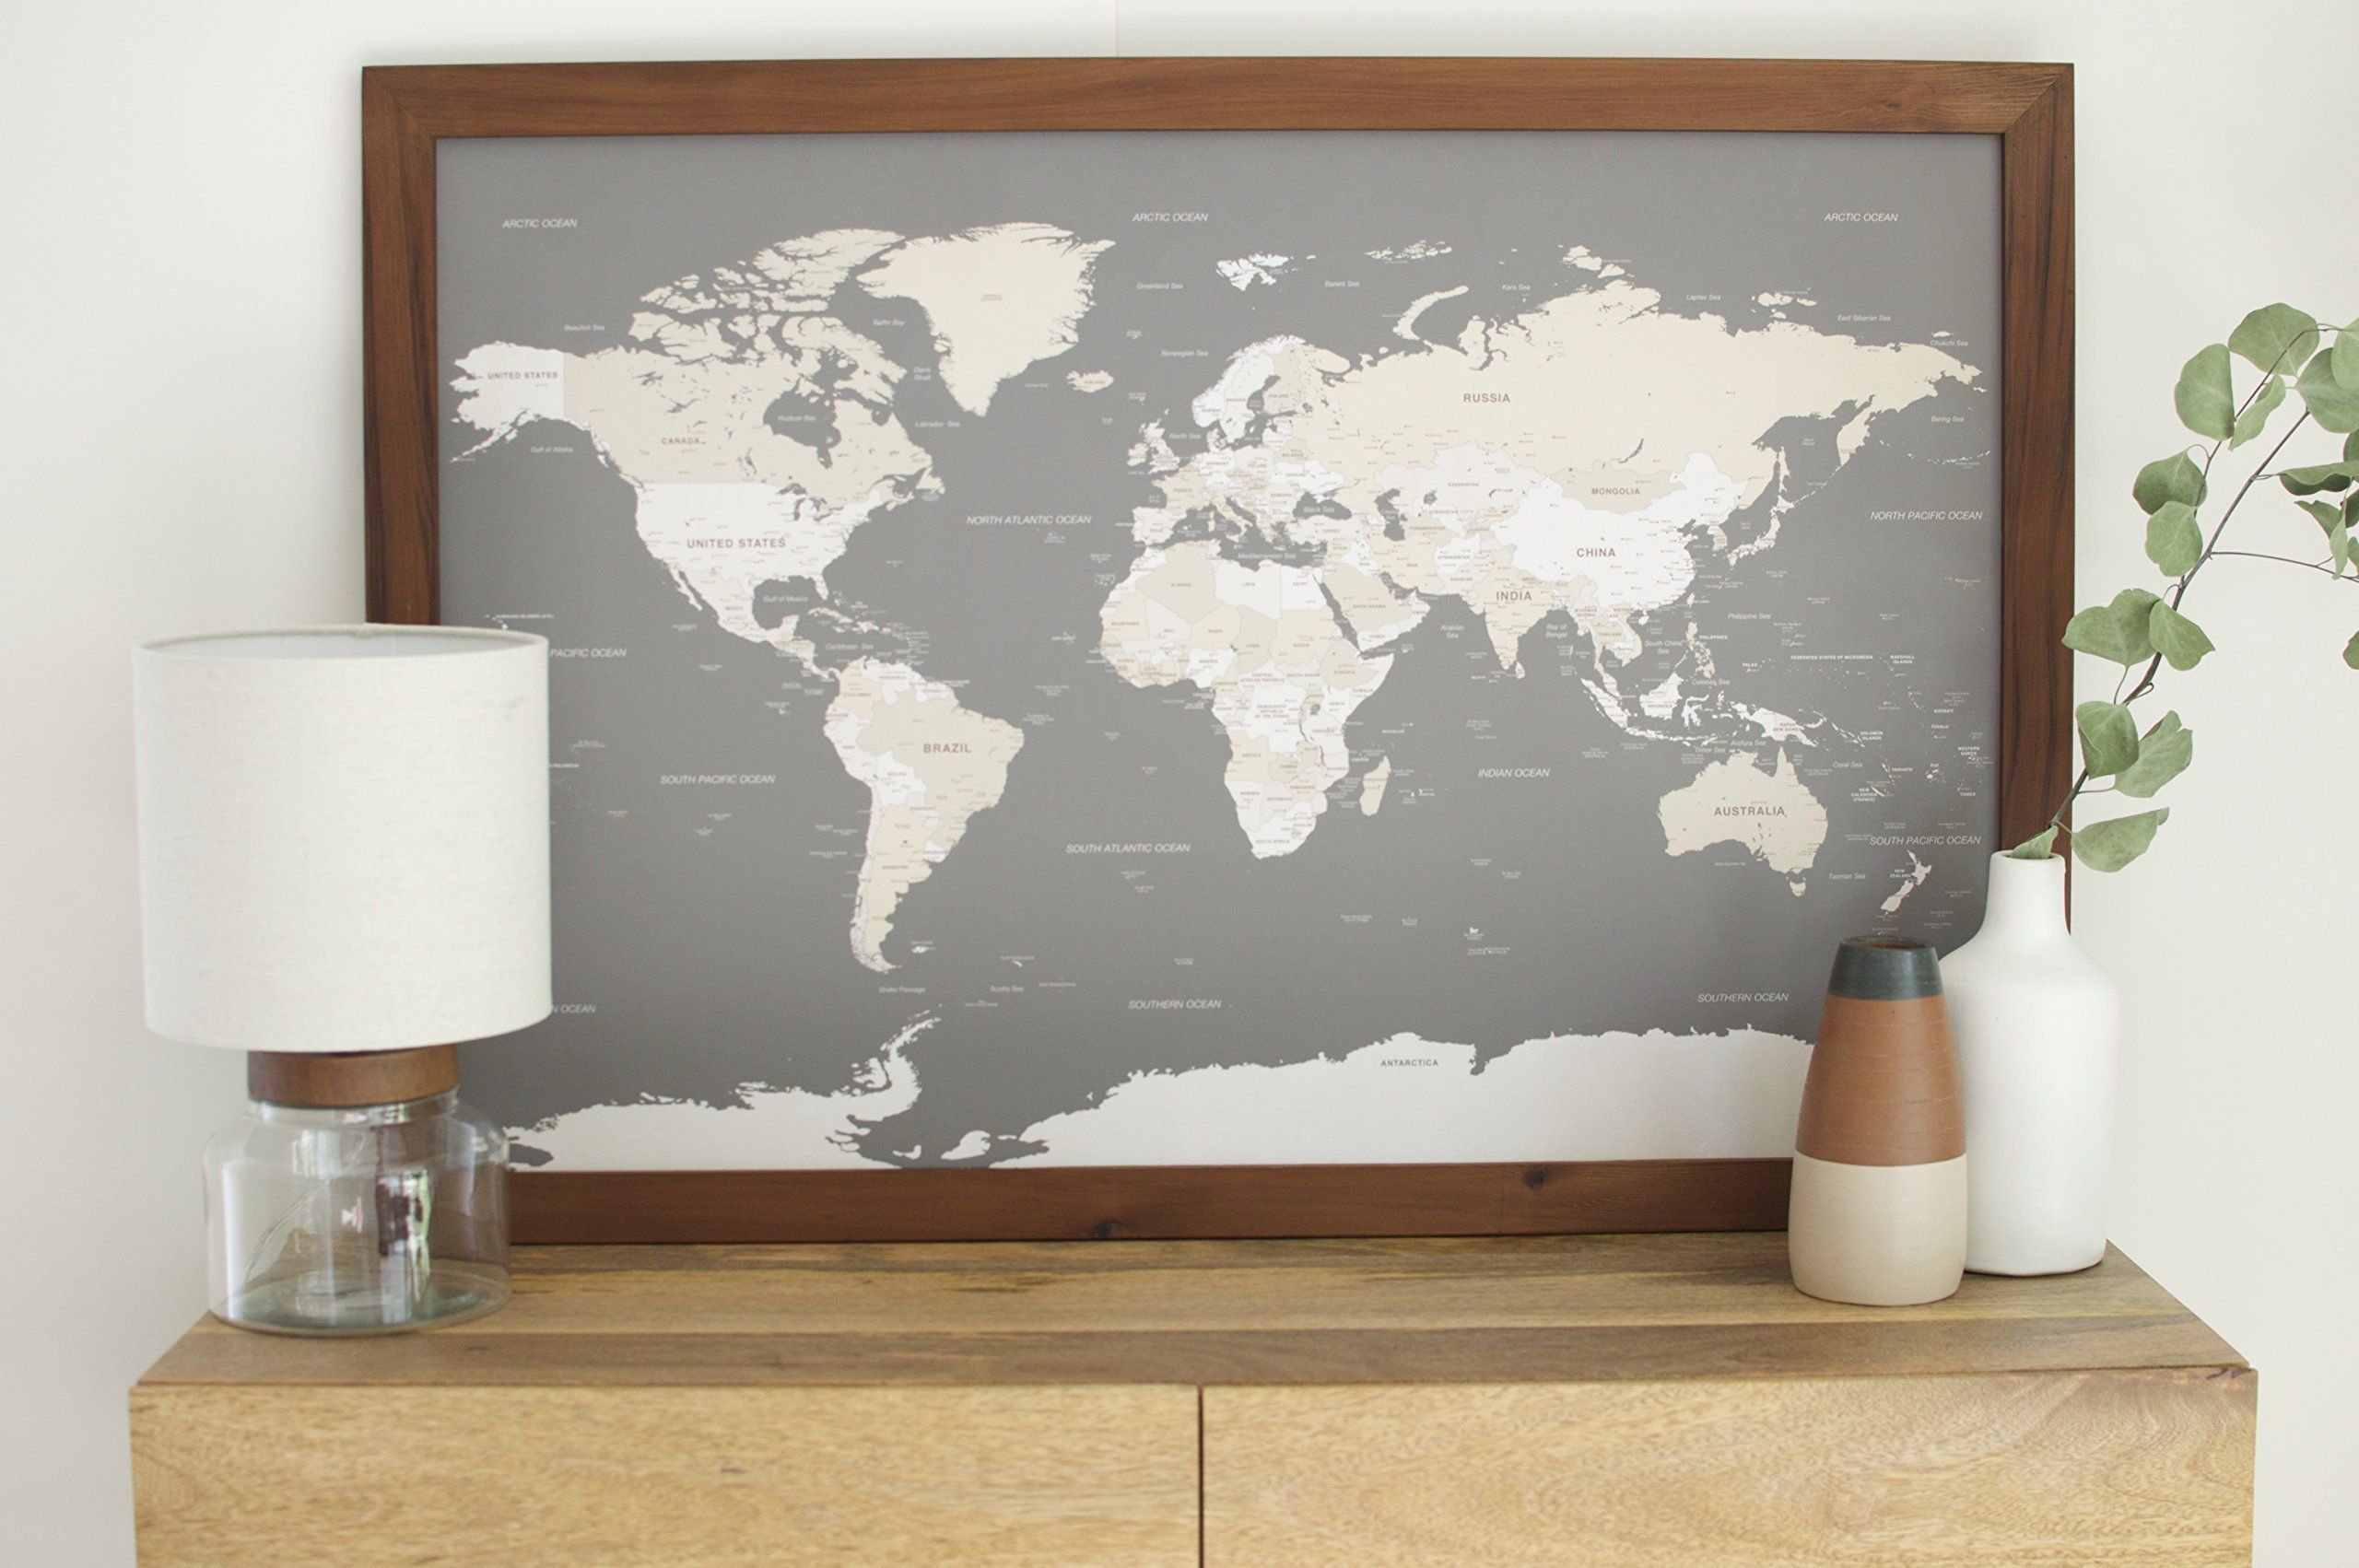 Classic world map large push pin travel map framed world map in large grey world push pin map classic frame gumiabroncs